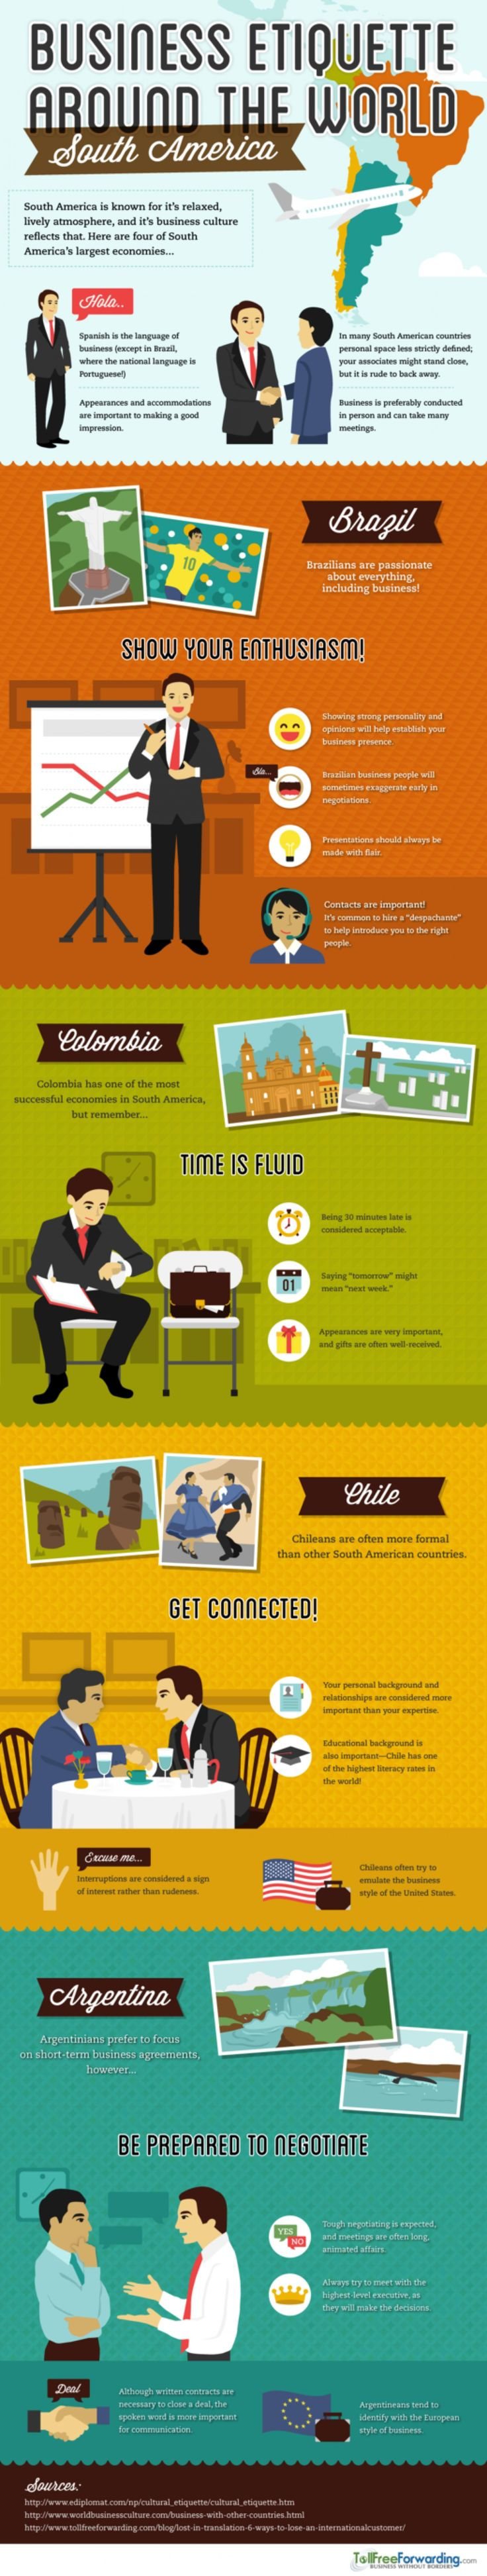 #Business #Etiquette: South America